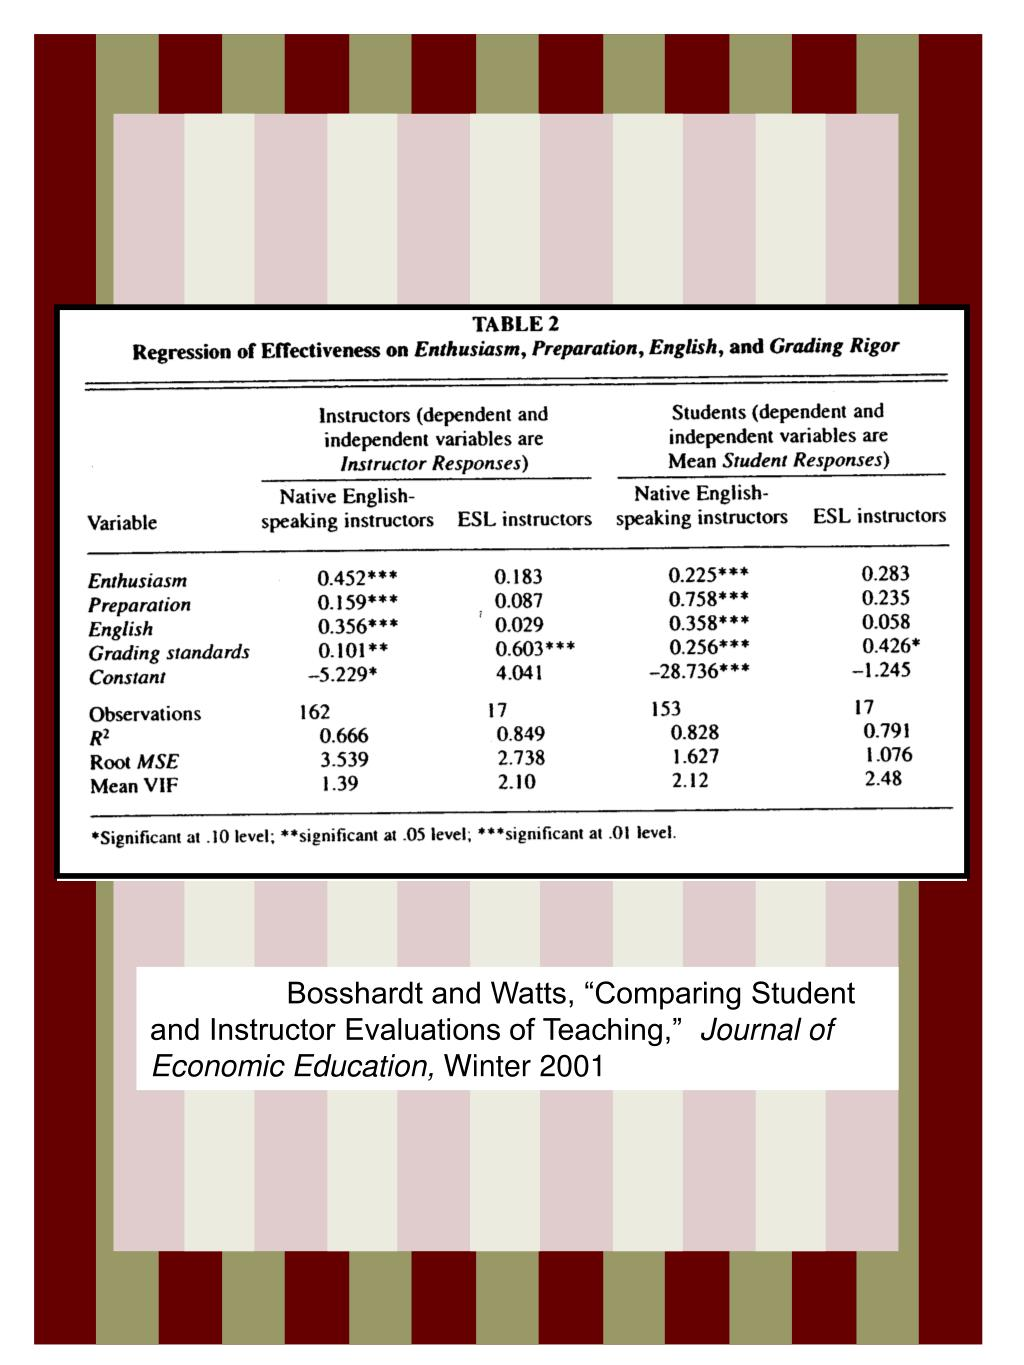 """Bosshardt and Watts, """"Comparing Student and Instructor Evaluations of Teaching,"""""""